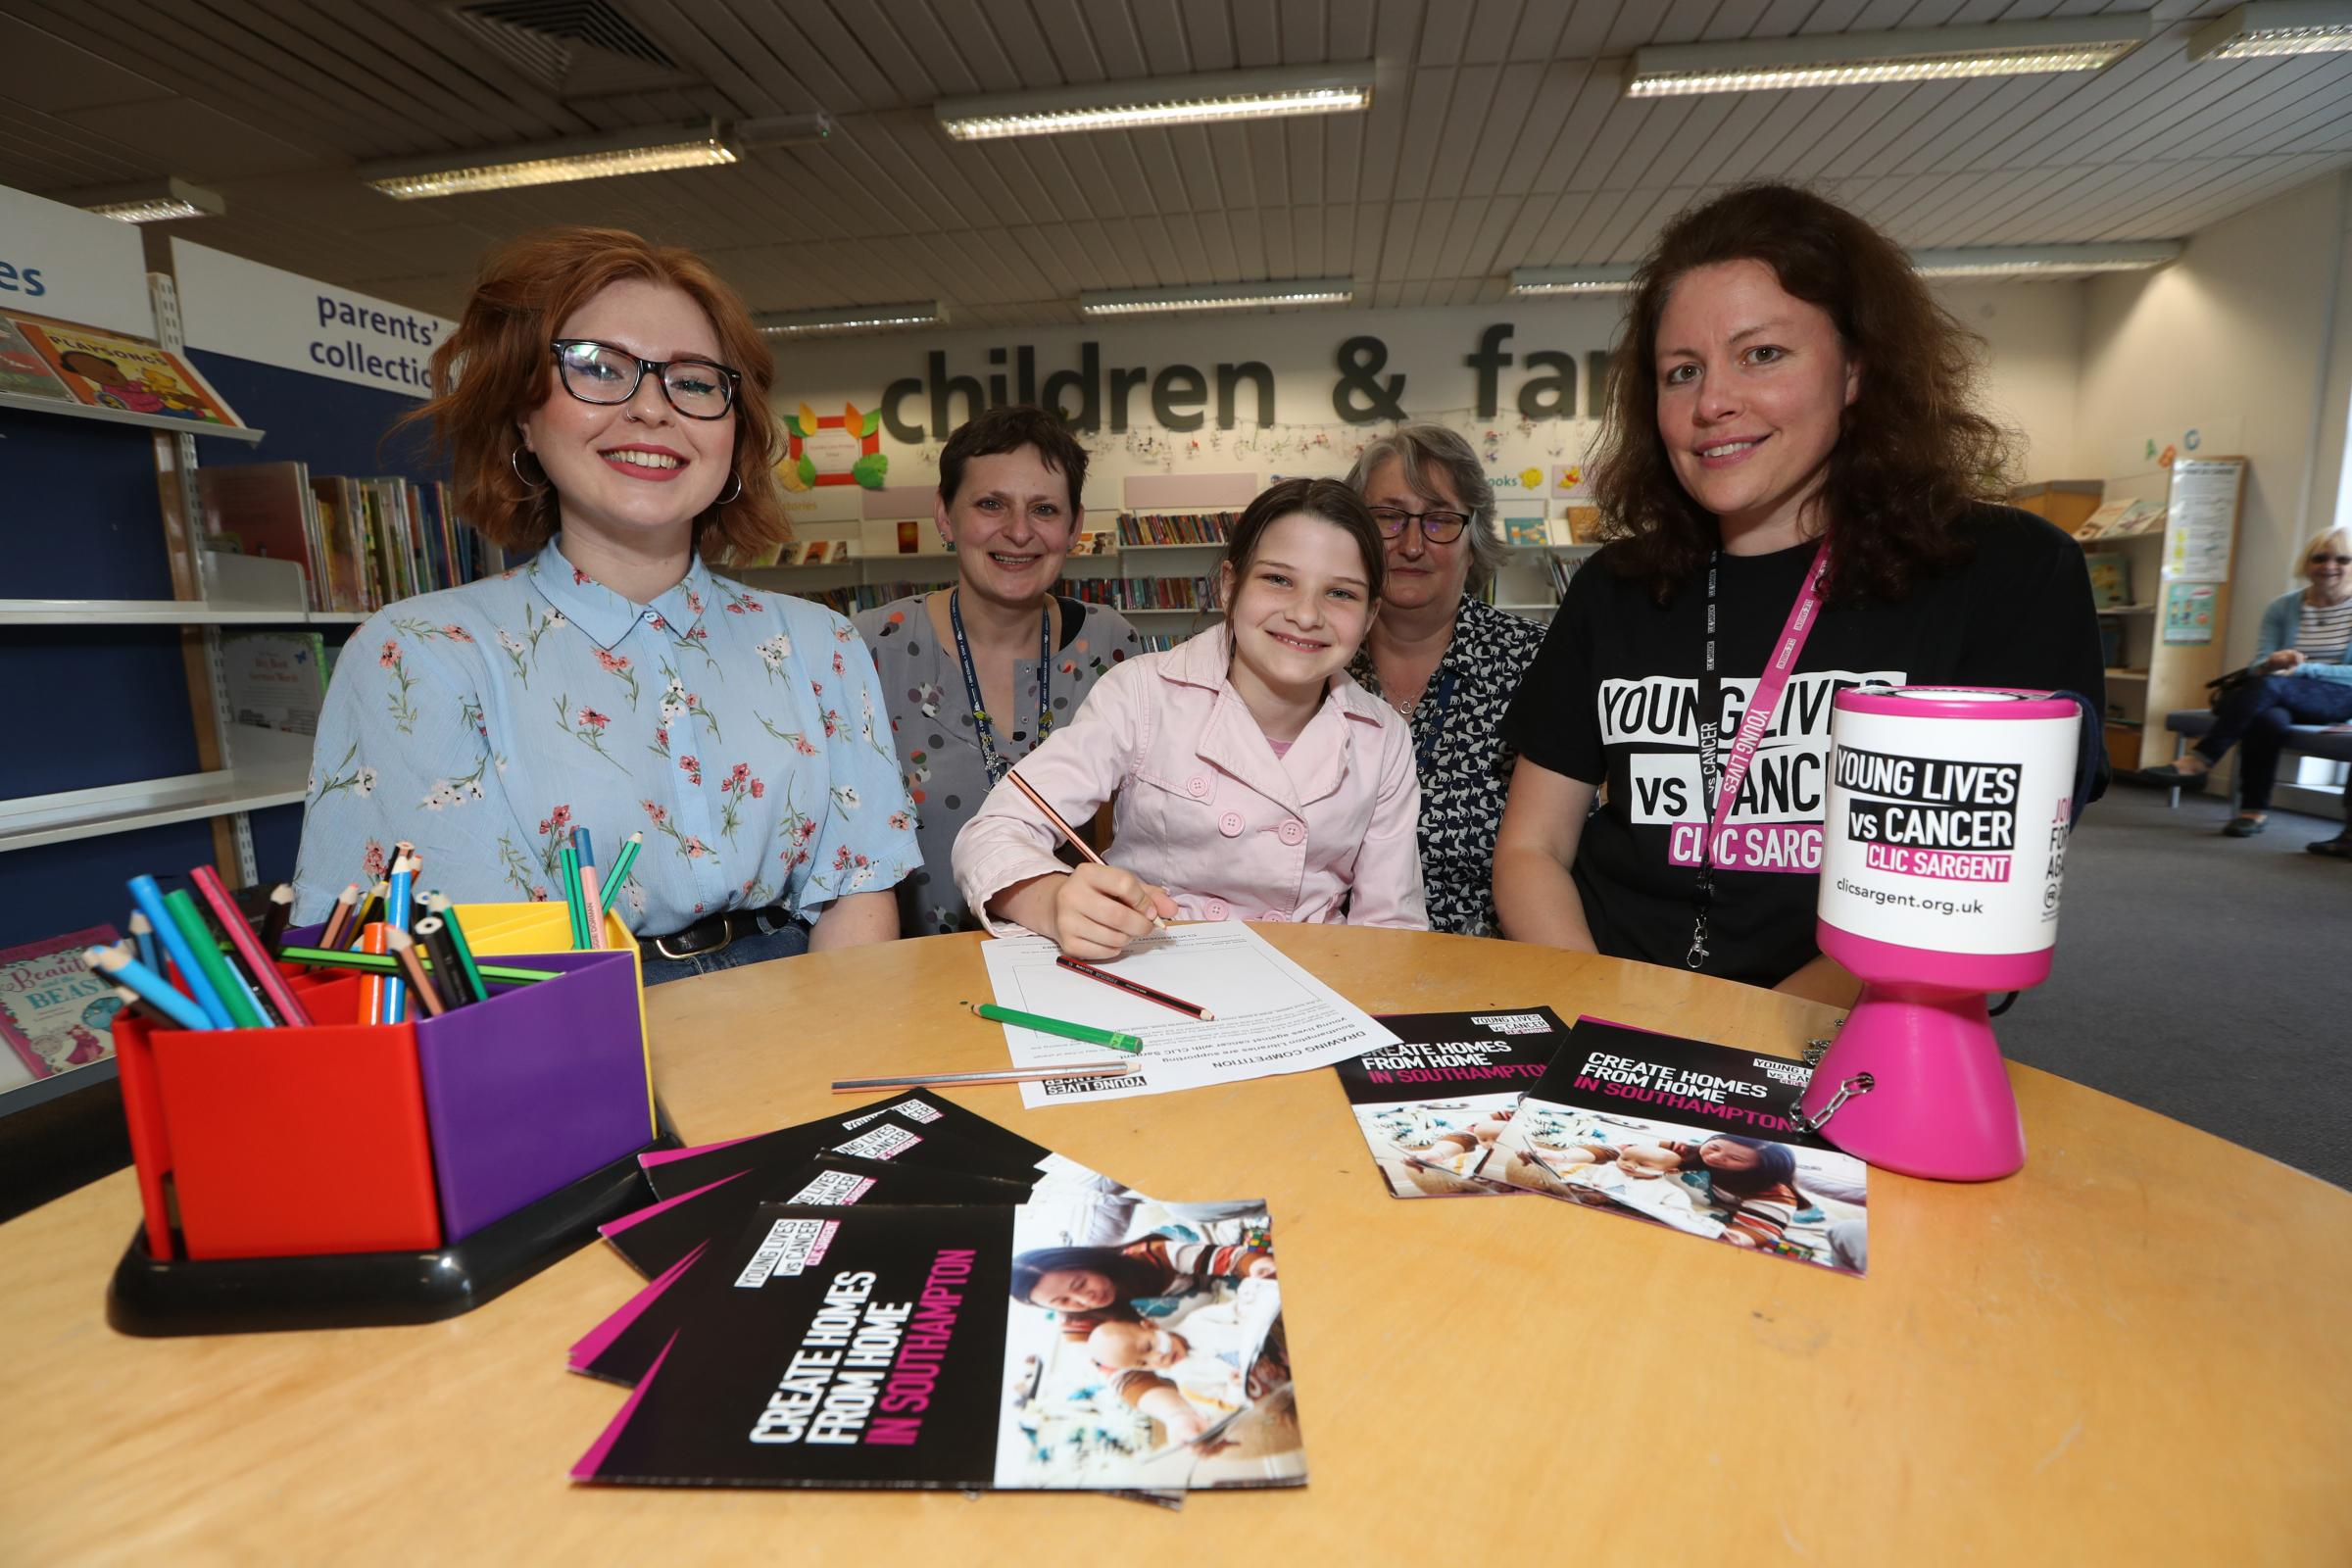 Launch of a drawing competition at Shirley Library in aid of Clic Sargent (l-r) Blogger and illustrator Amy Harwood, Cath Brear Shirley Library, Milly Phillips (11), Fran Simonis Shirley Library and Liz Blunt Clic Sargent.